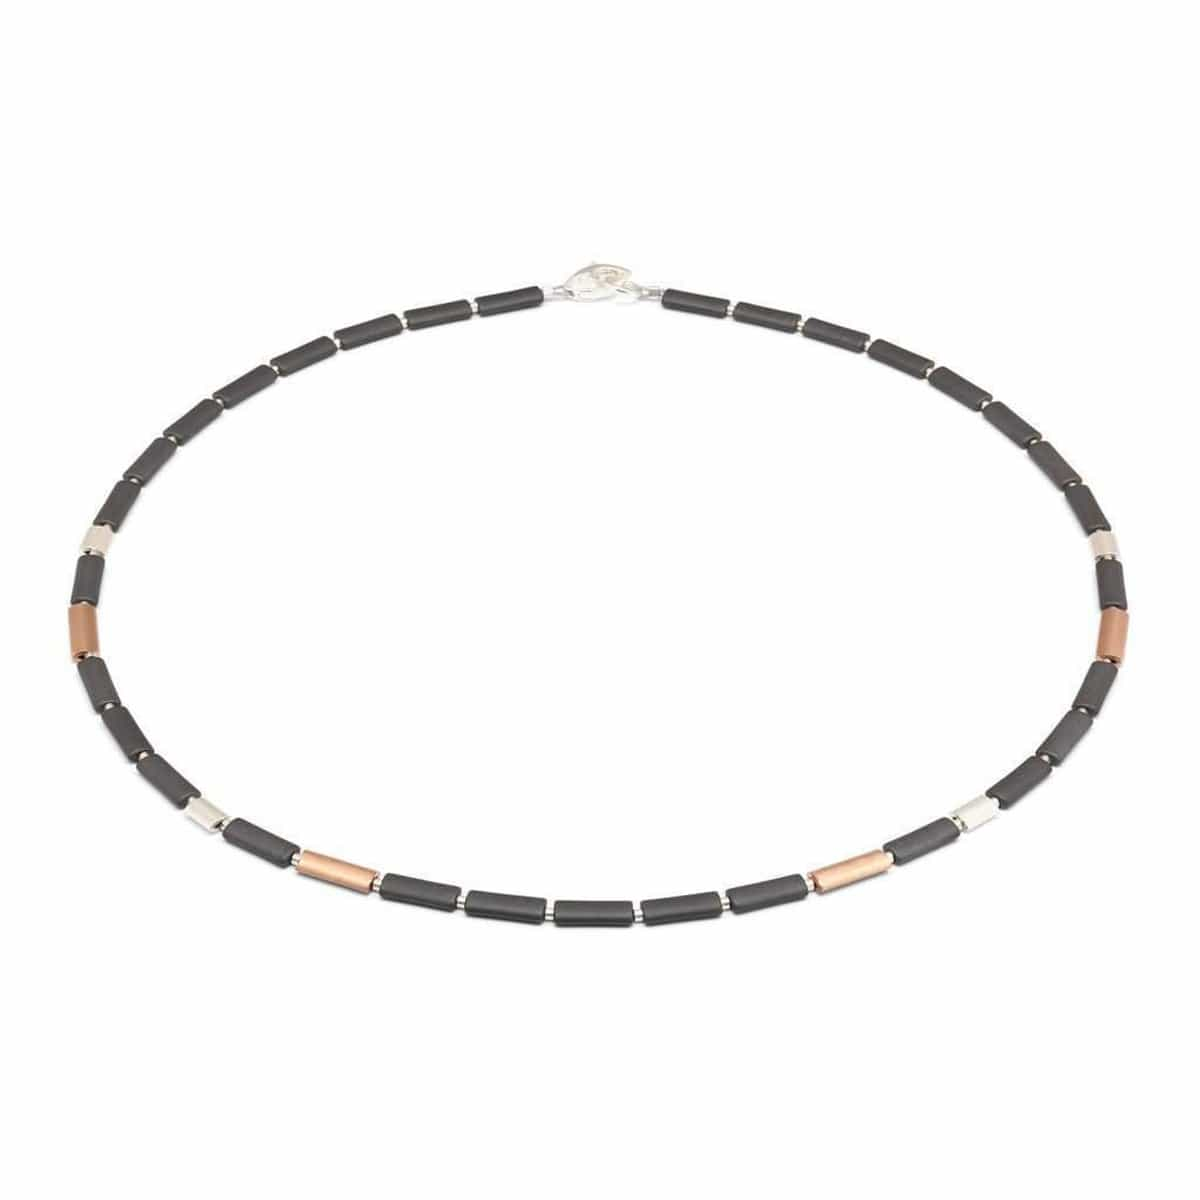 Ovalsa Hematite Necklace - 85738275